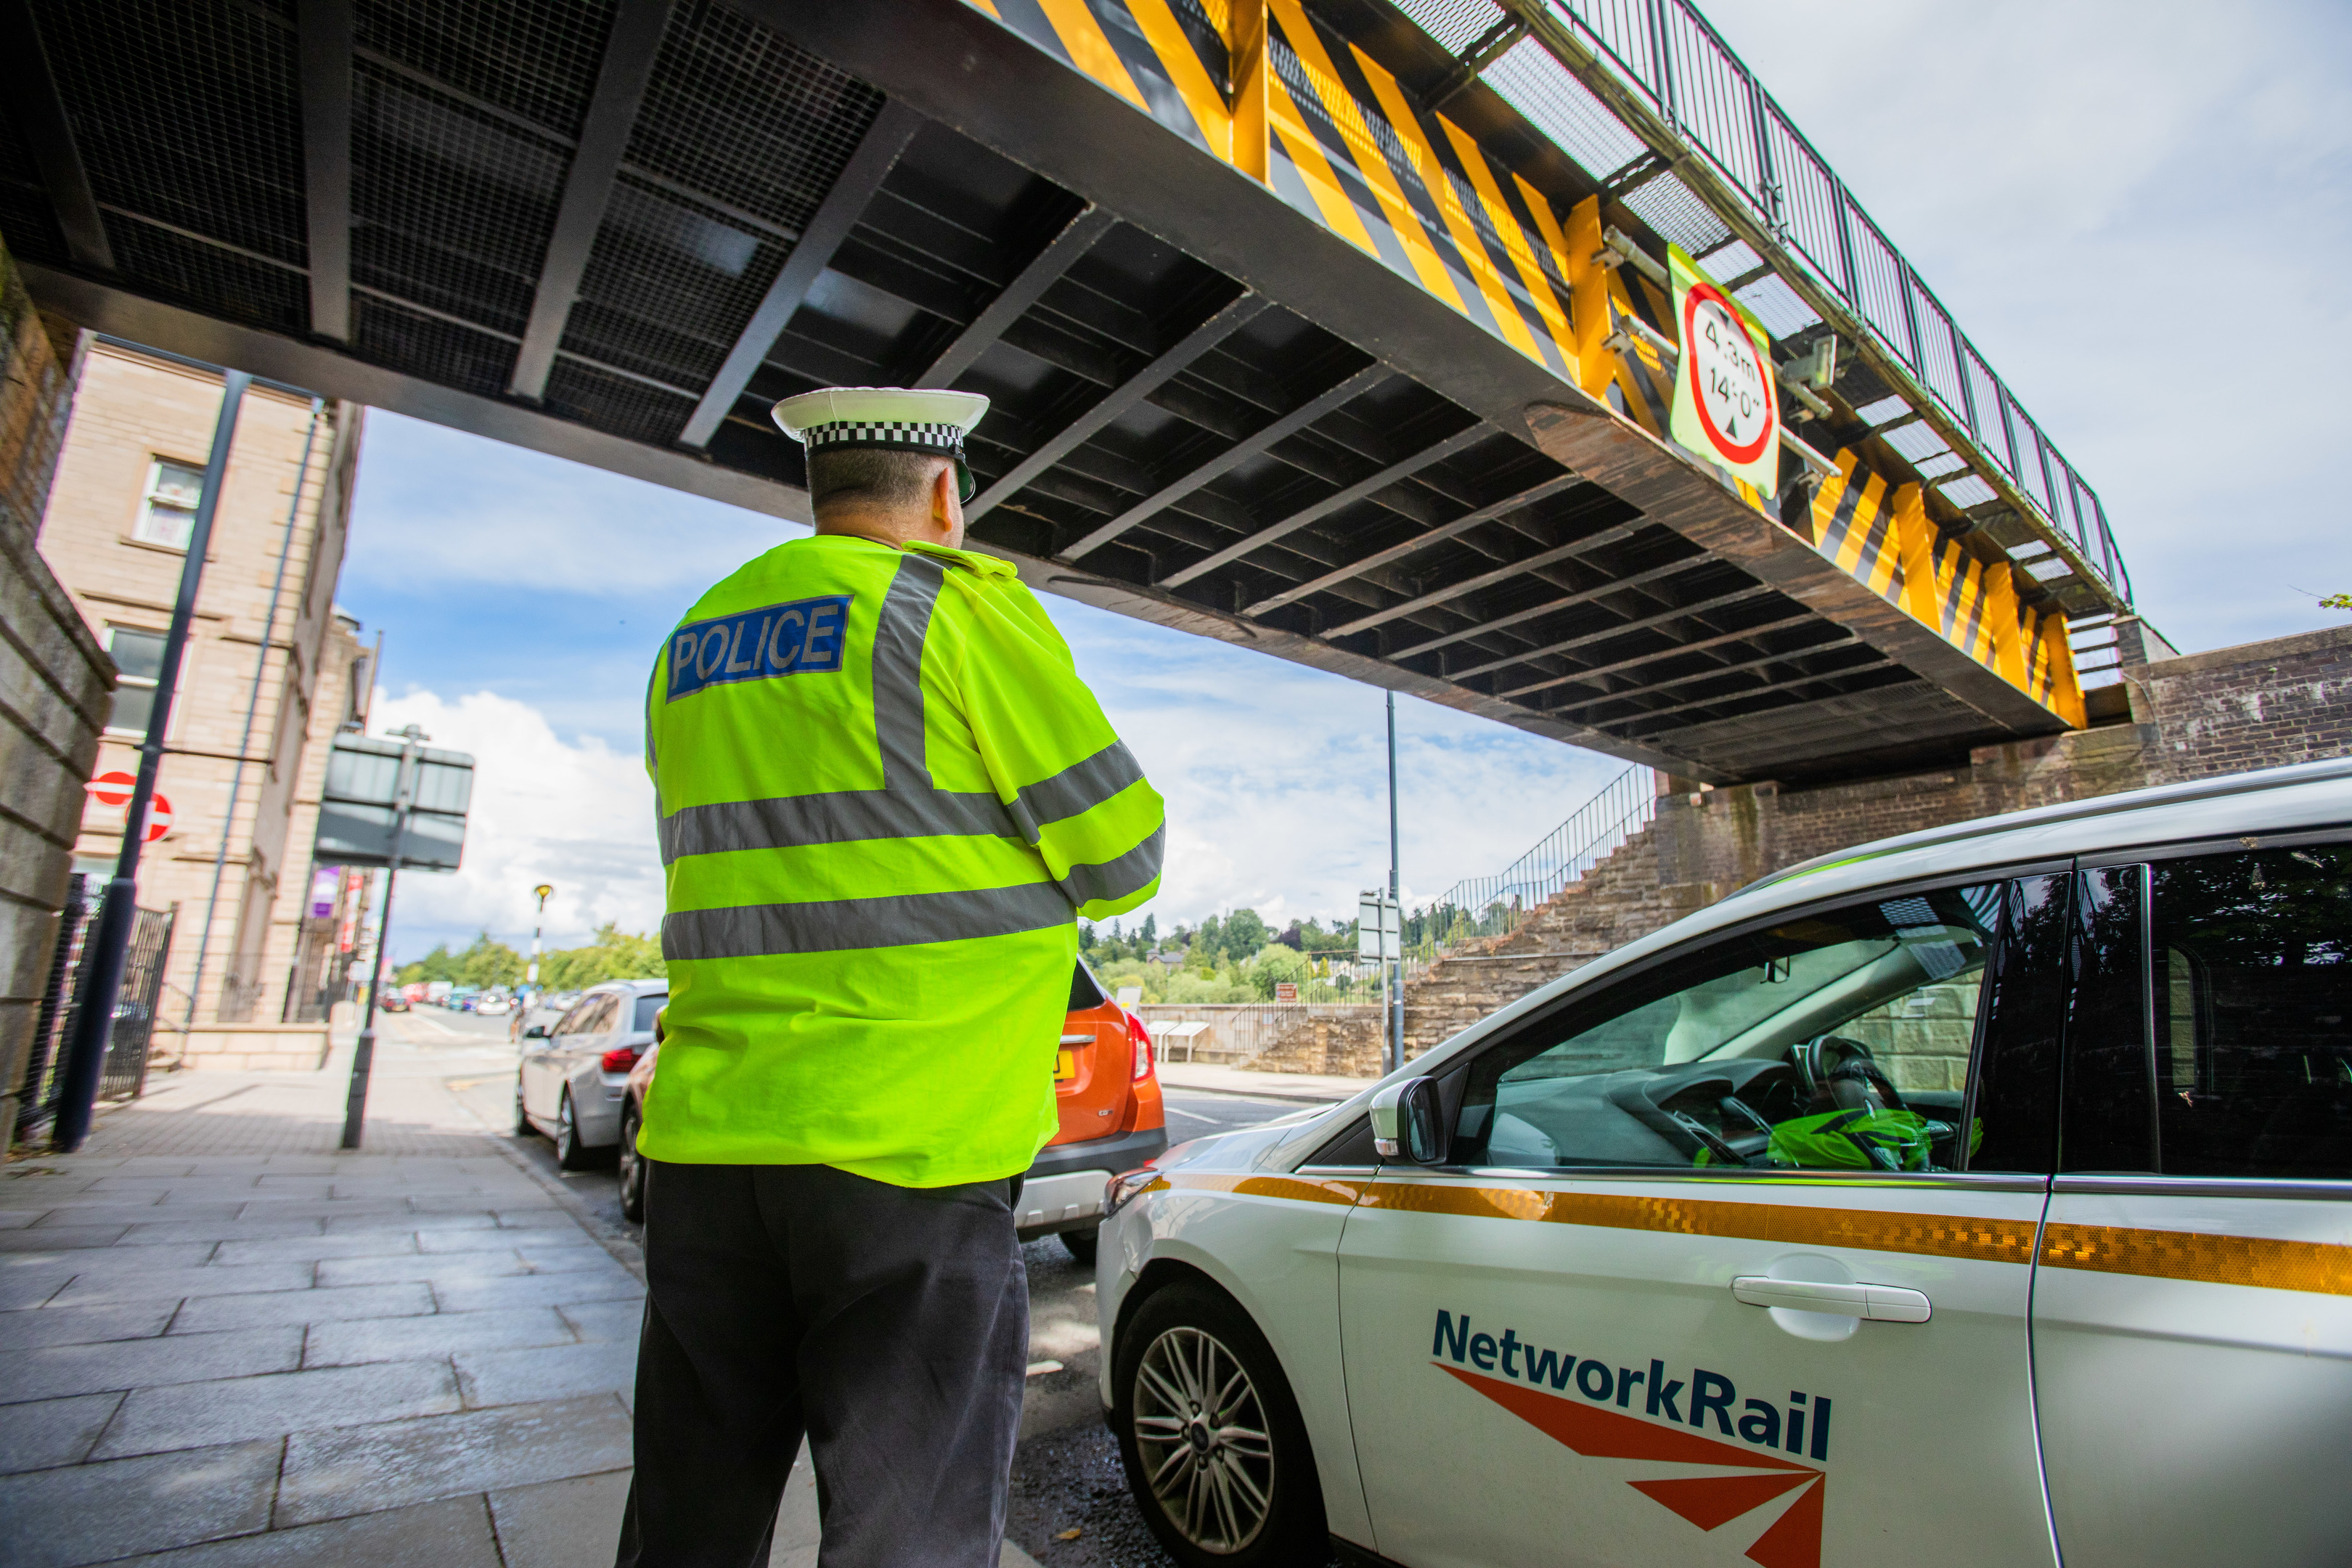 Police and Network Rail at the rail bridge on Tay Street, Perth.